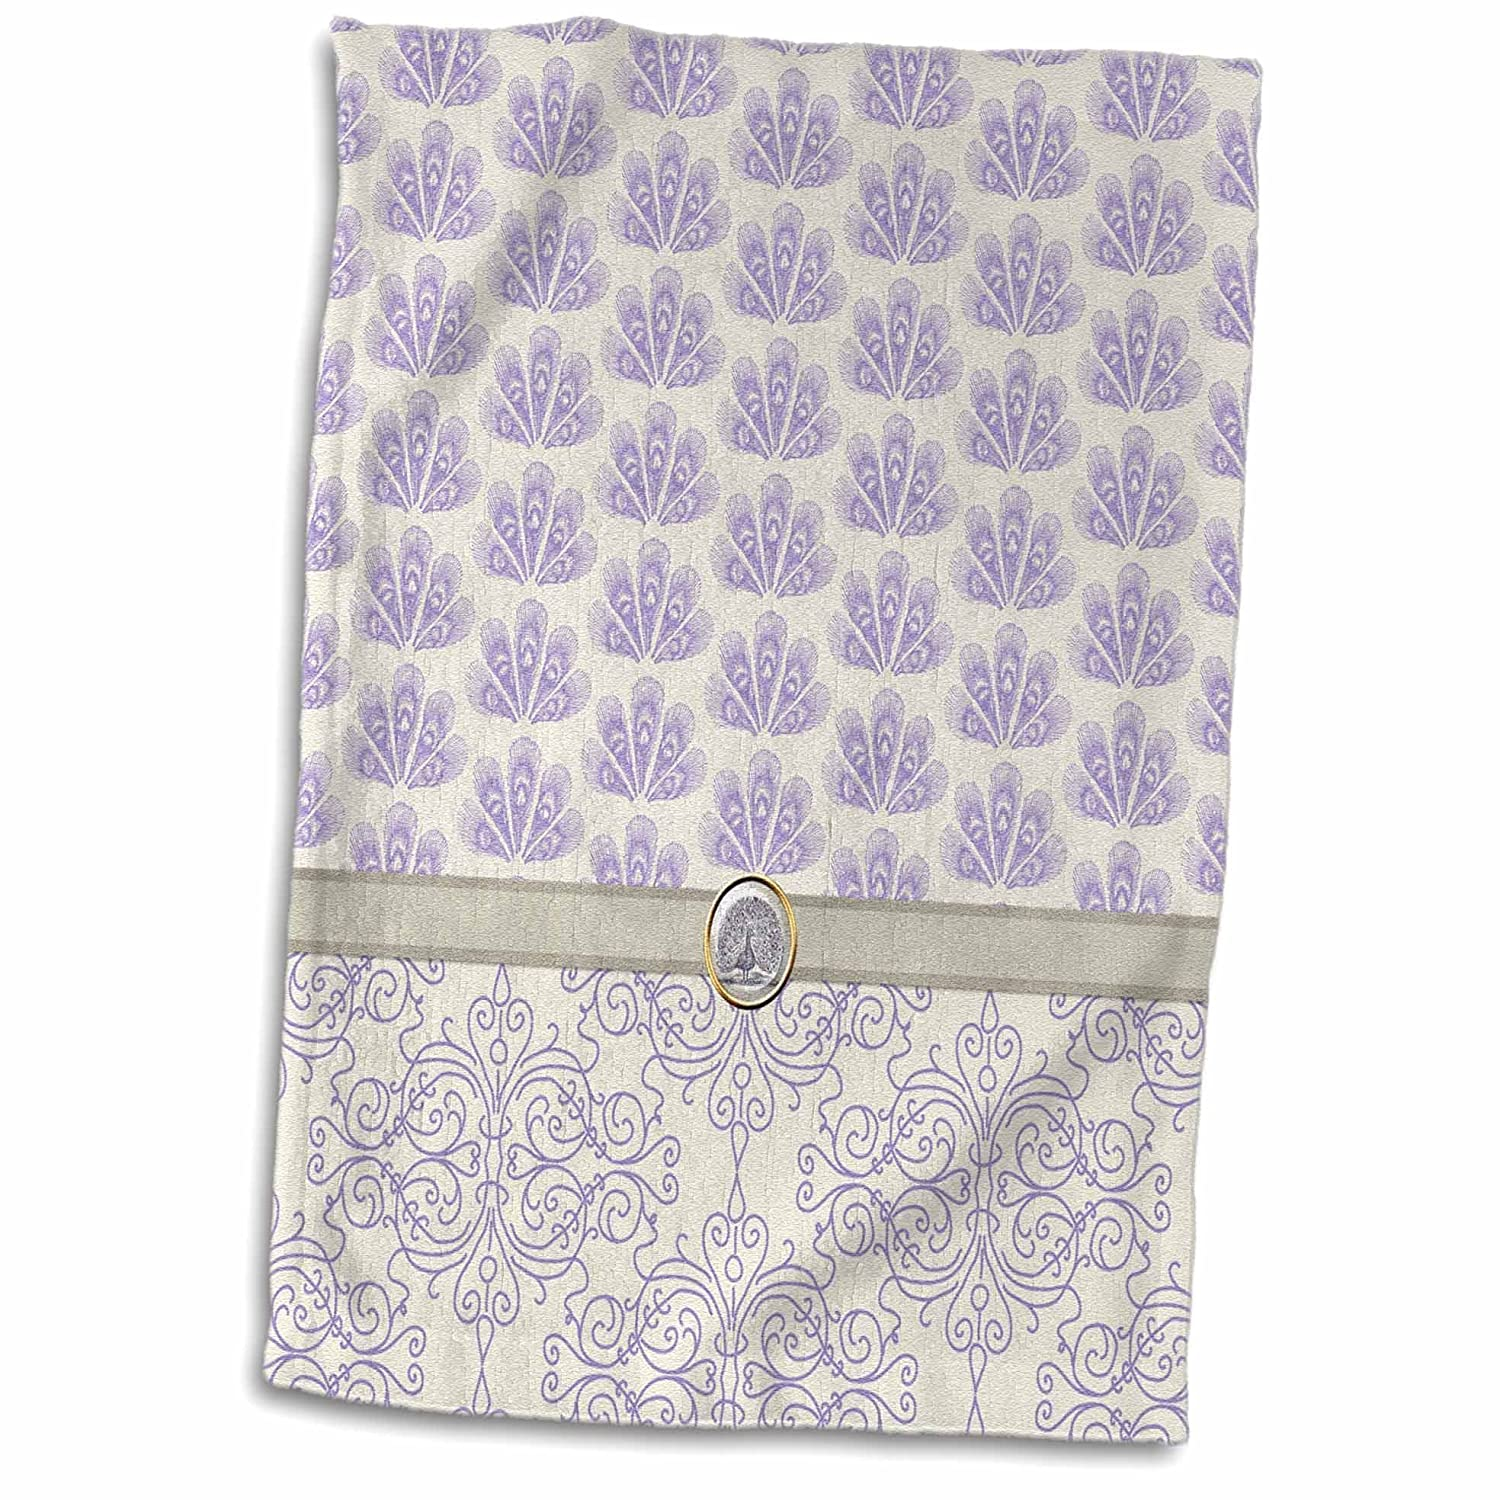 15 x 22 Multicolor 3D Rose Damask and Peacock Print-Lavender Towel